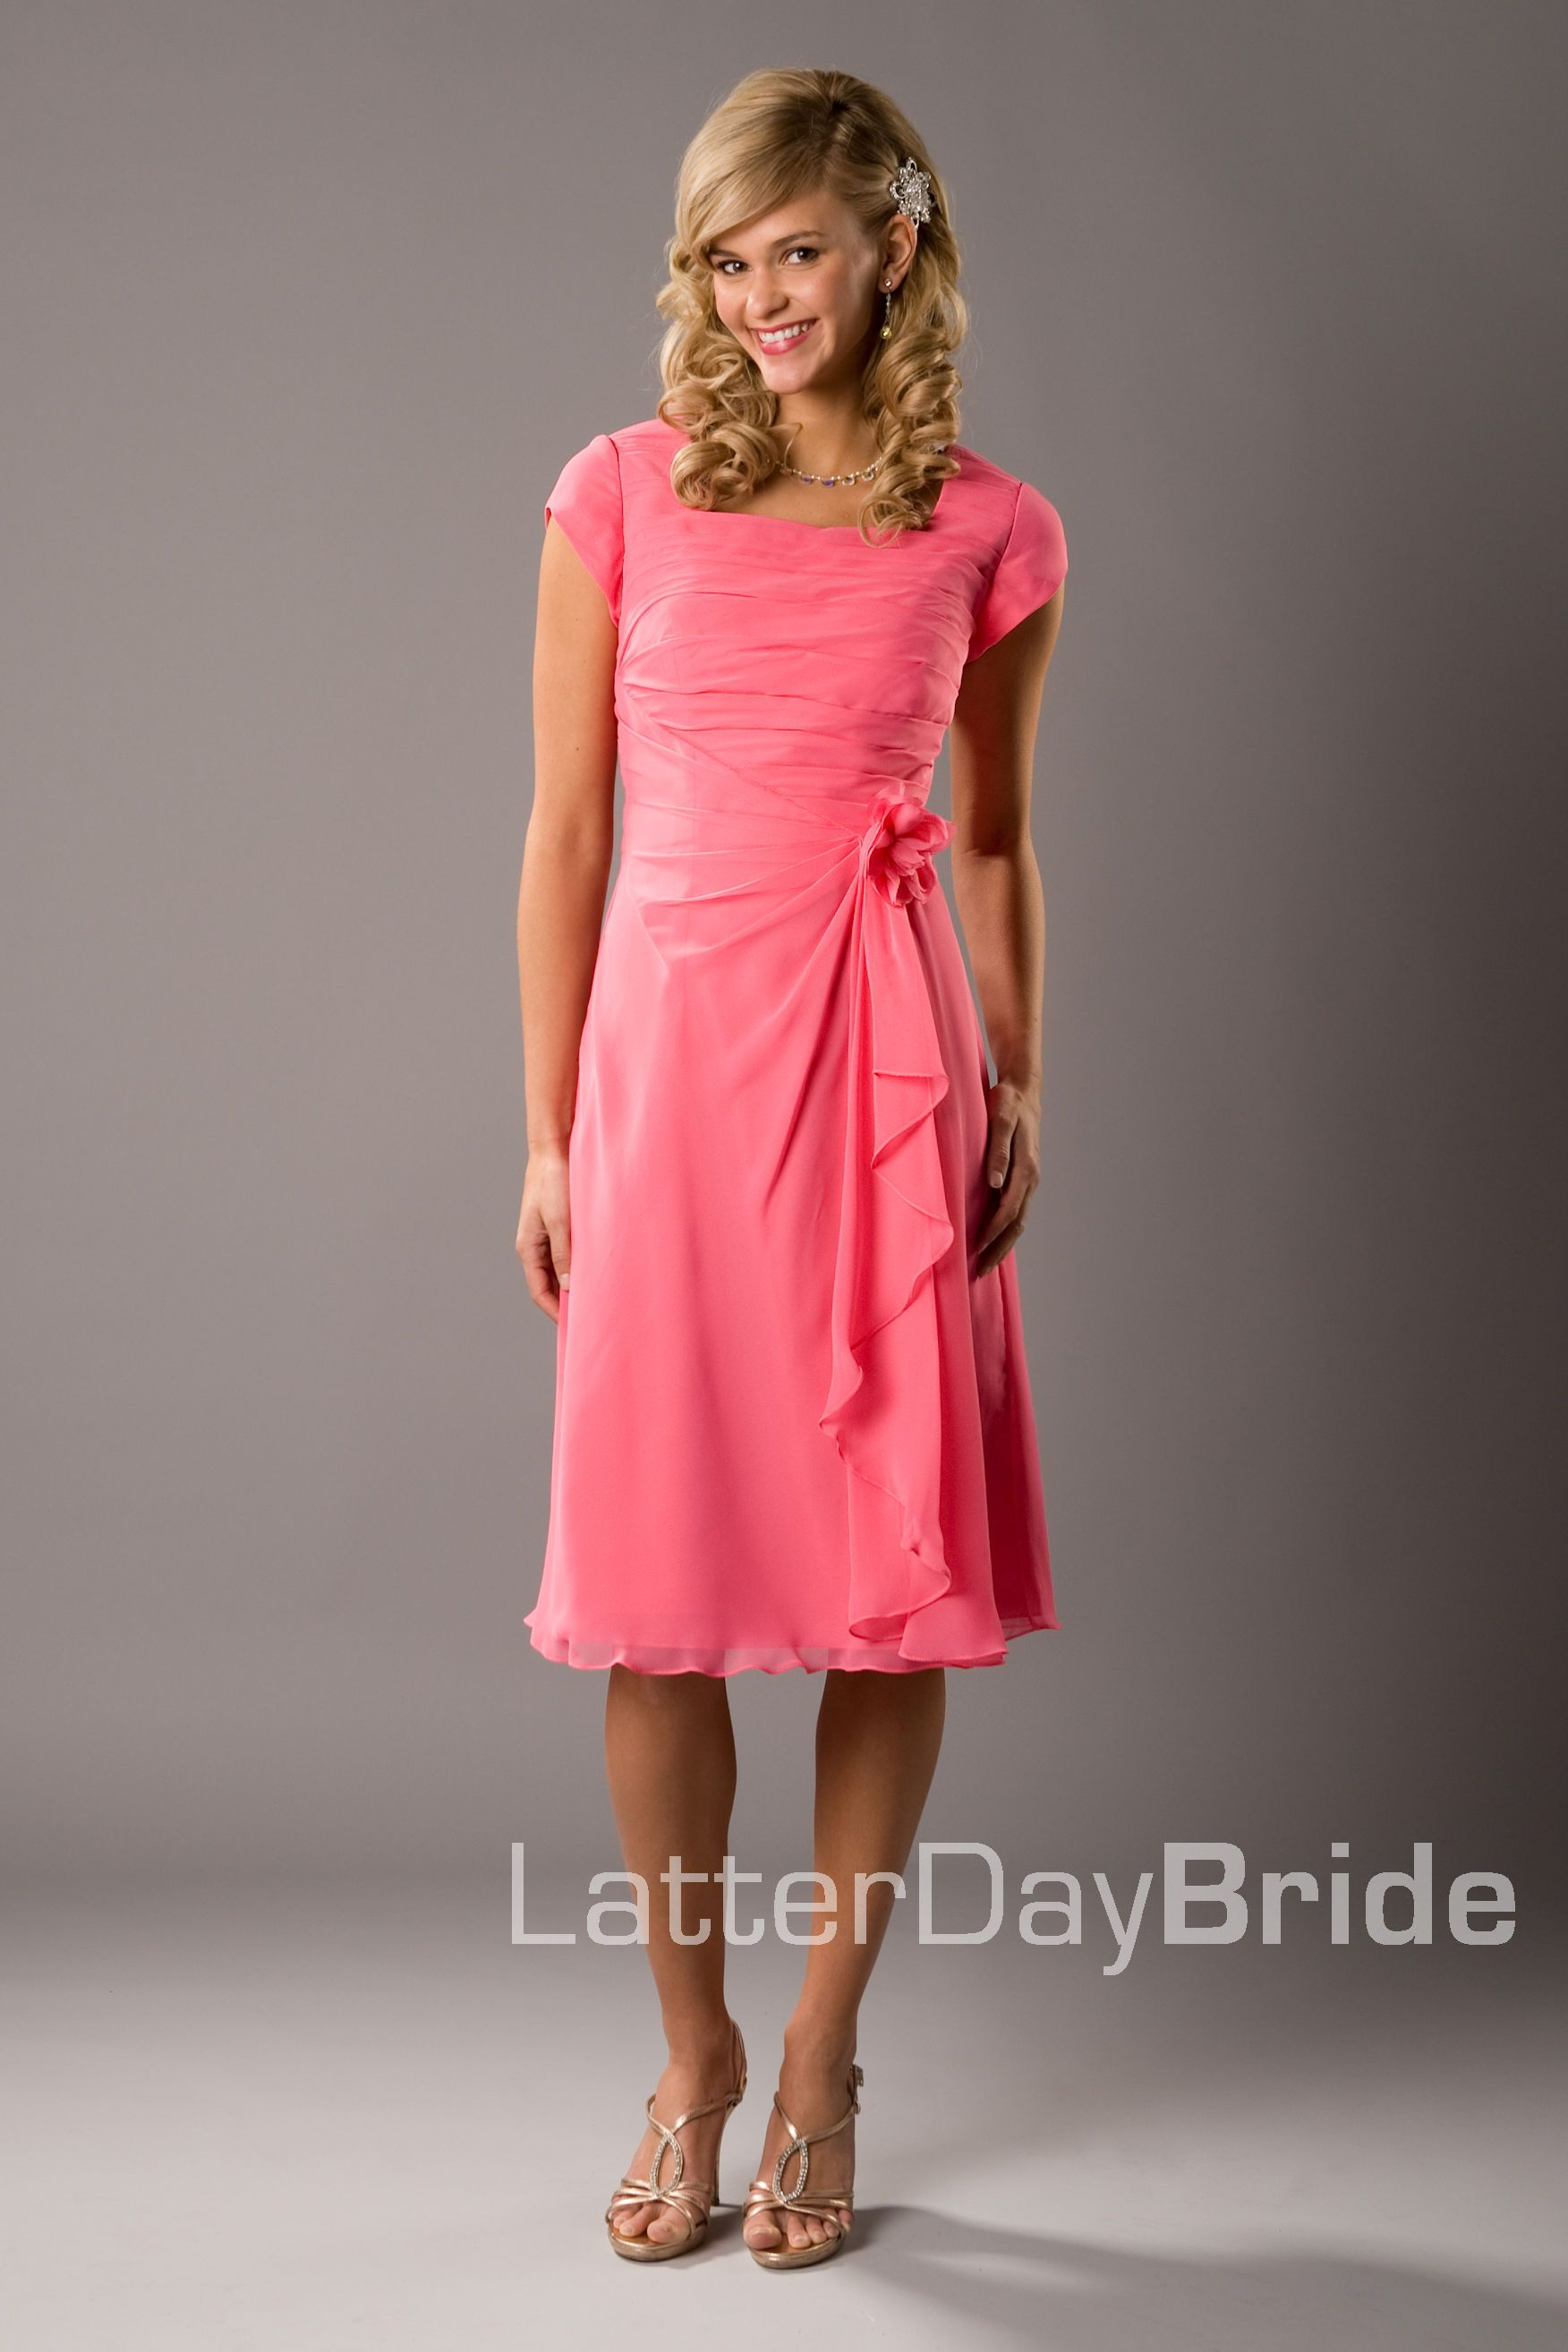 Modest Bridesmaid Dress | LatterDayBride | Coral | Modest ...